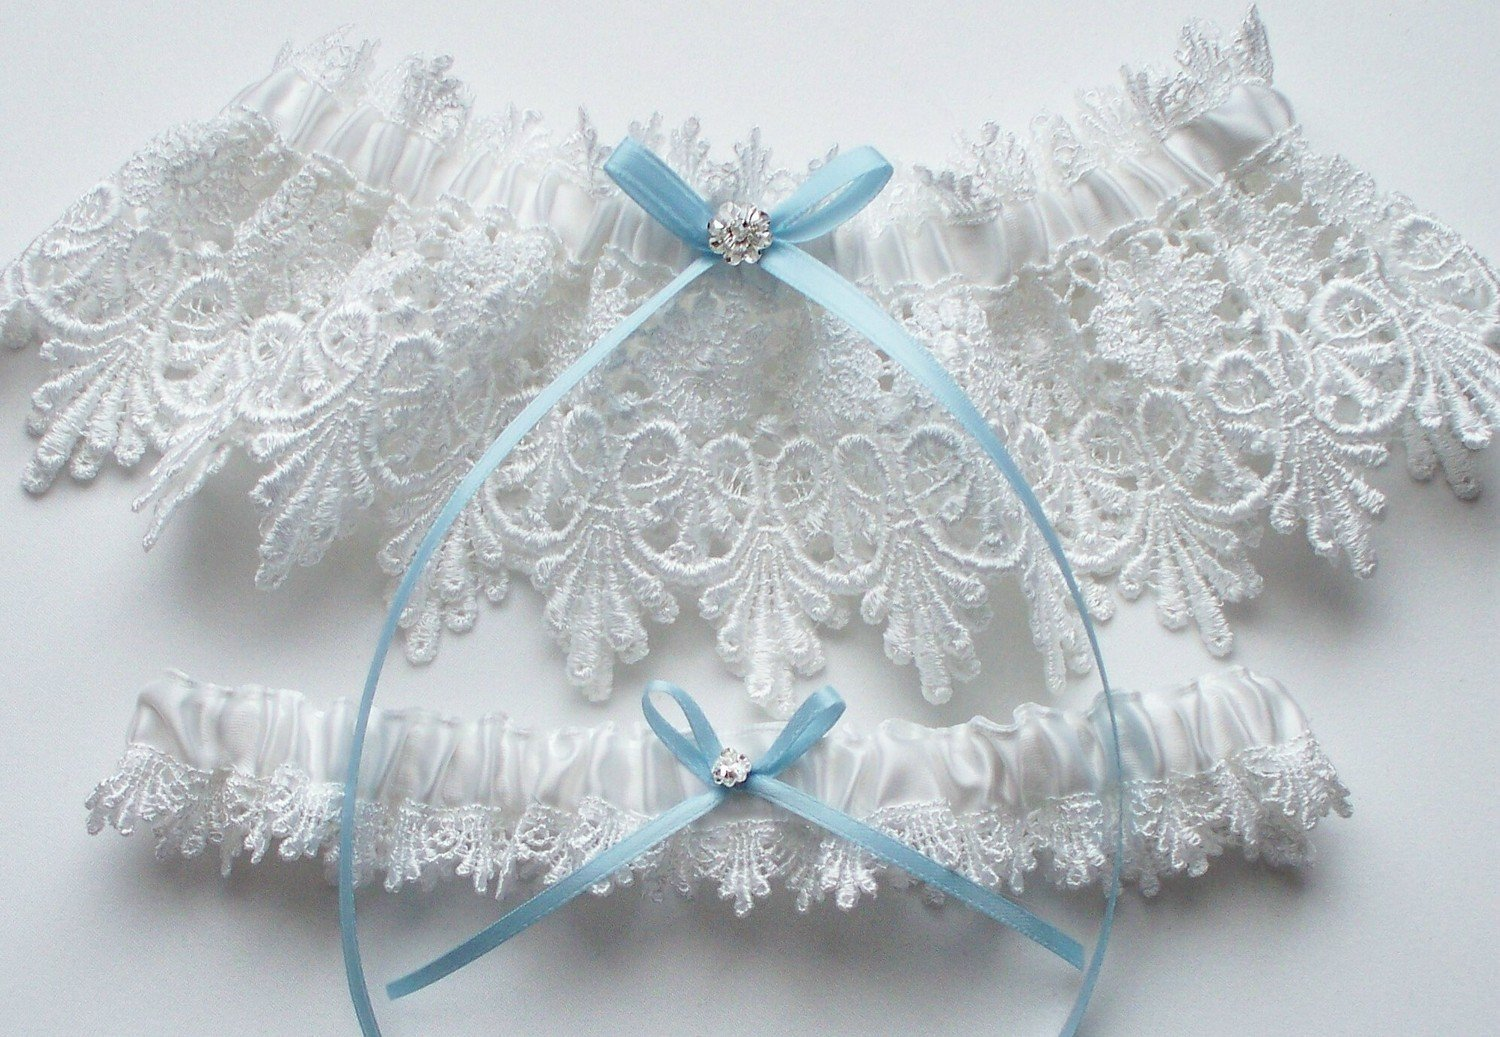 Wedding Garter Set in White Lace with Blue Satin Ribbon Bow and Swarovski Crystal Centering - The ALICIA Garter Set